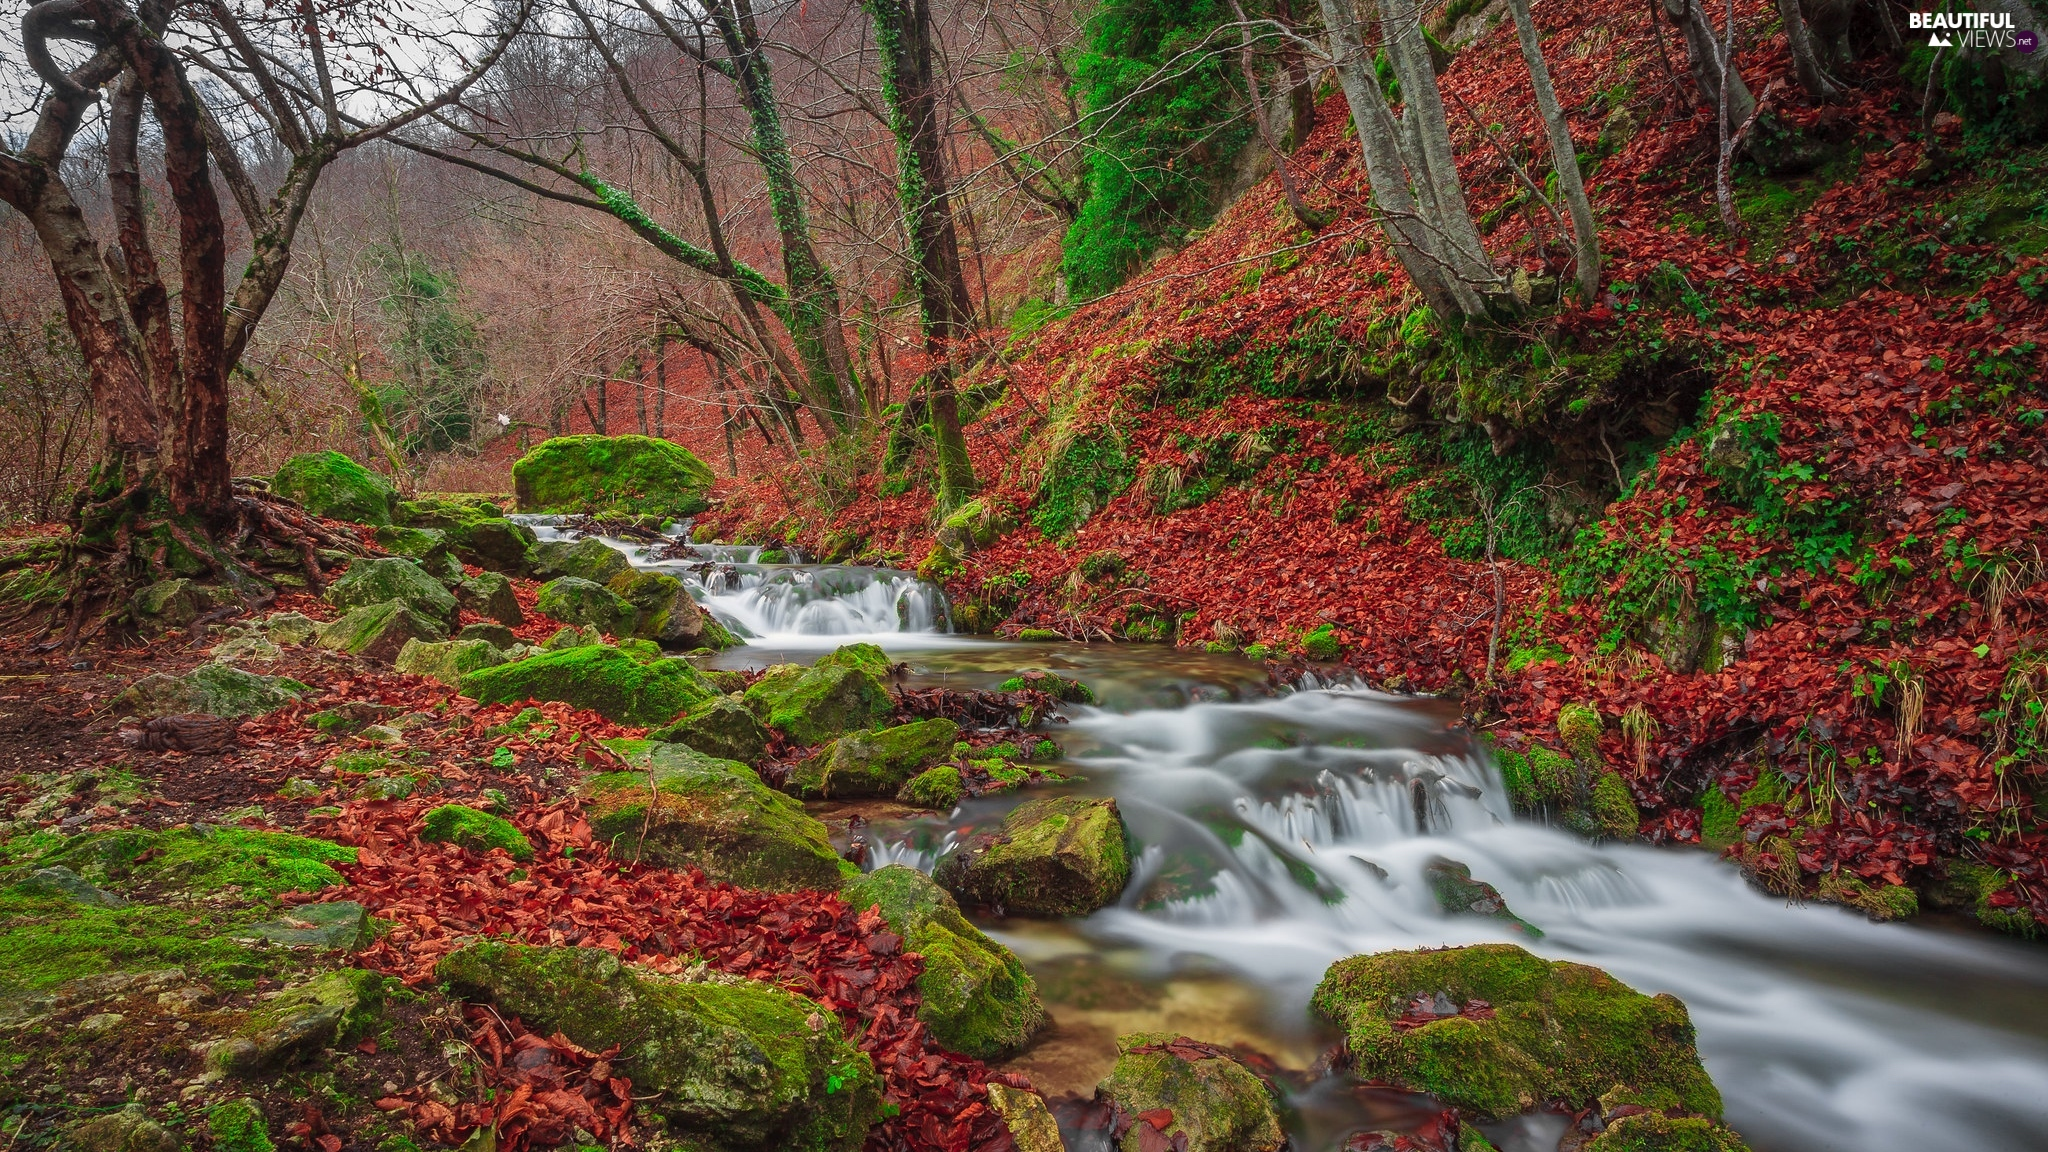 mossy, Stones, forest, River, autumn